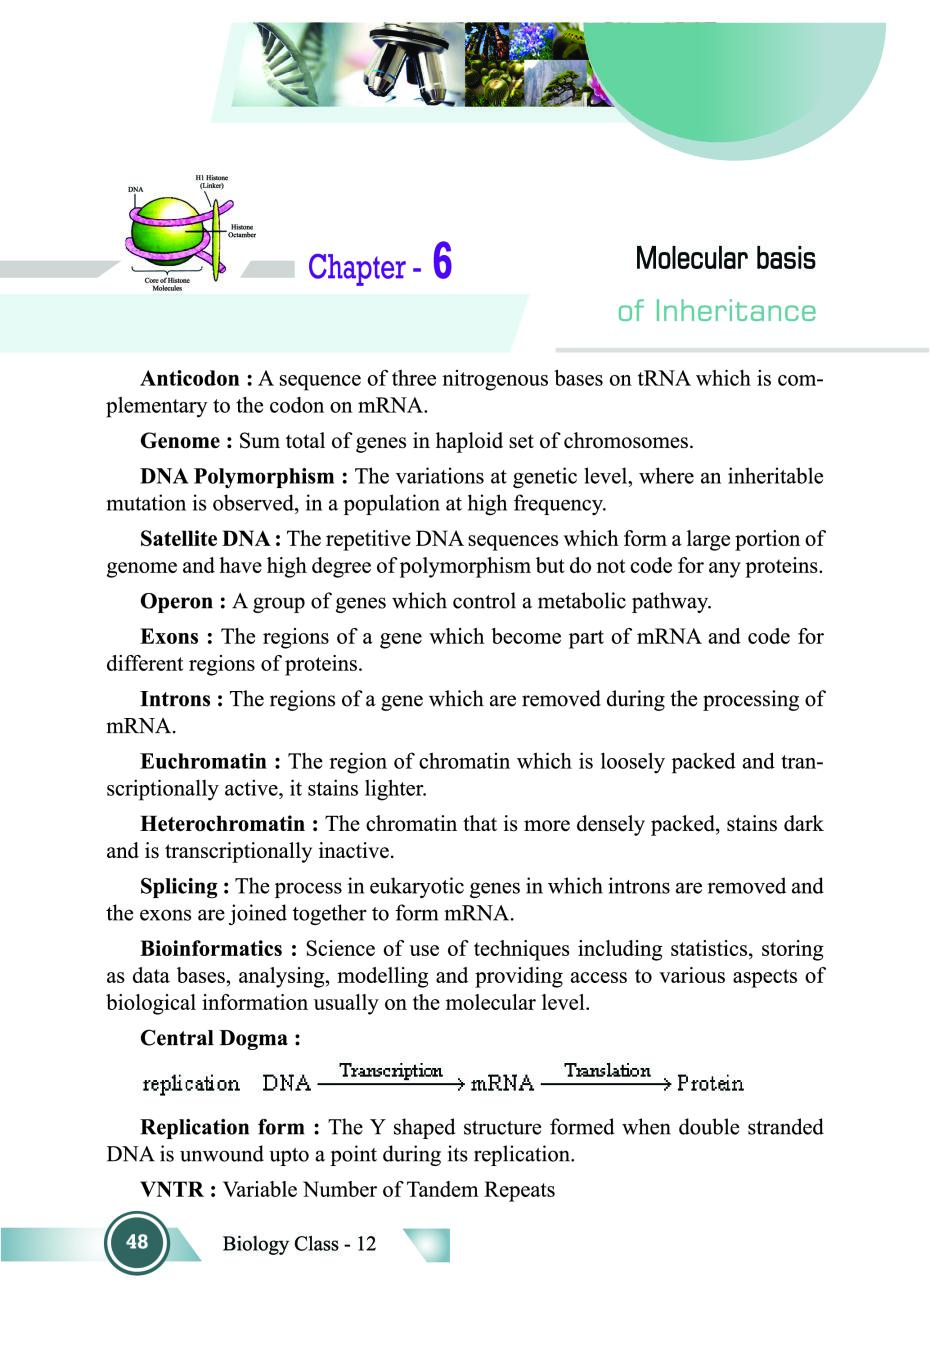 Class 12 Biology Notes for Molecular Basis of Inheritance